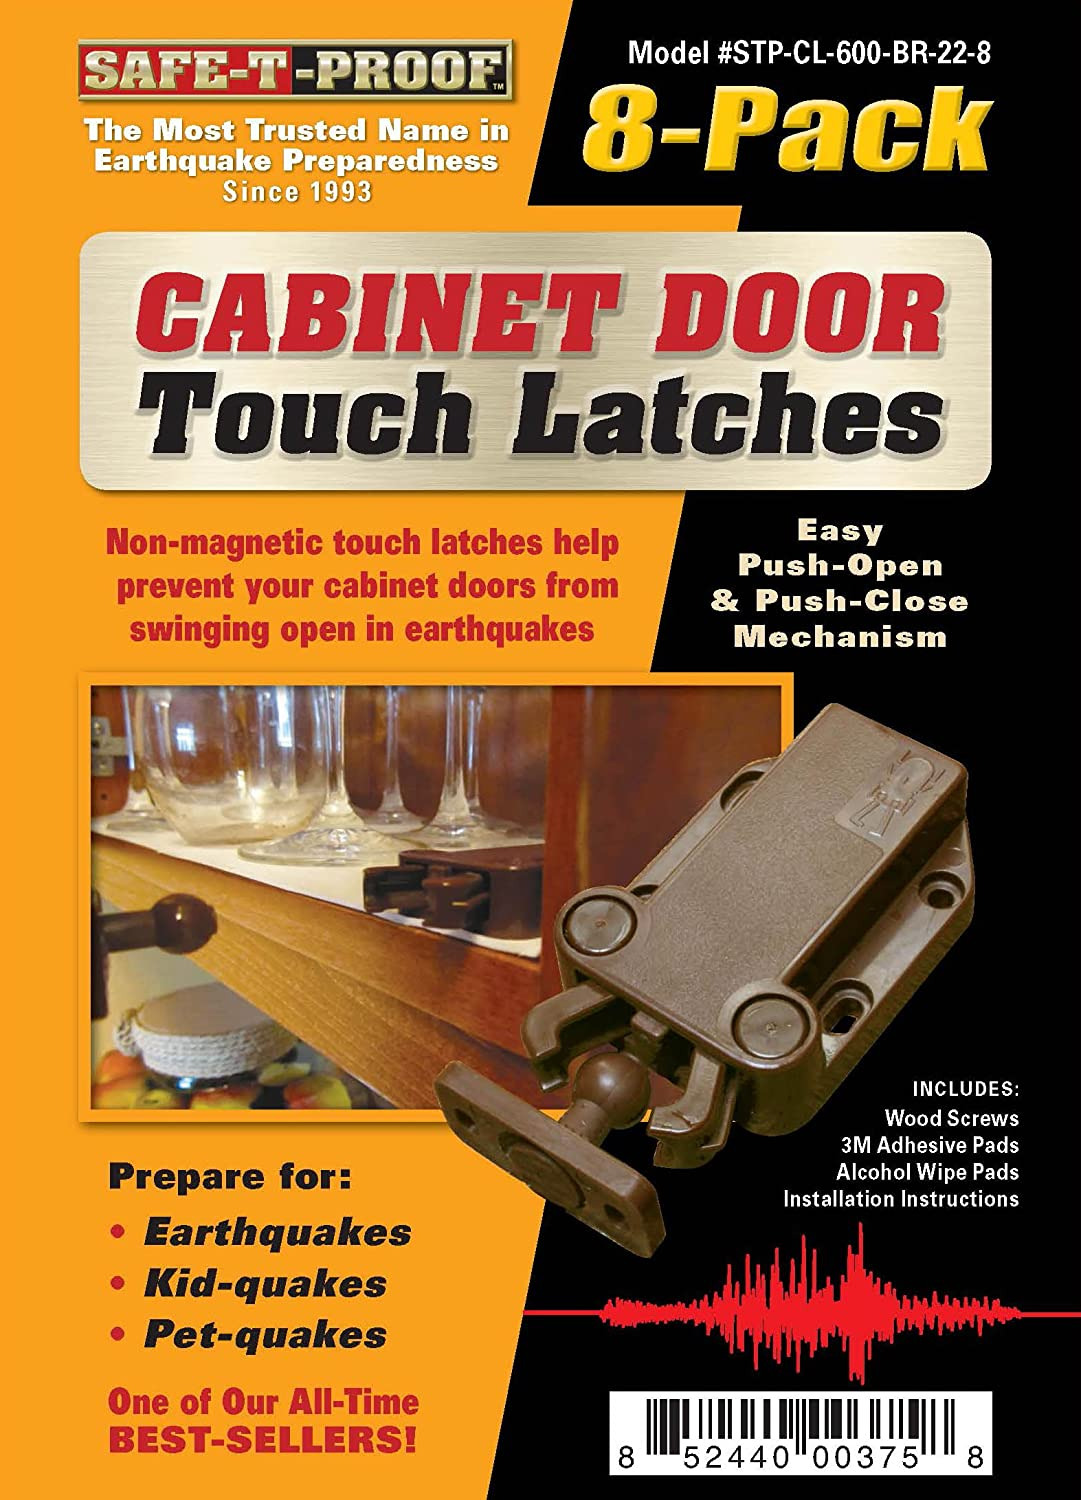 Cabinet Door Pads Luxury Safe T Proof Stp Mp 600 Br 2208 Cabinet Door touch Latches Pack Of 8 Brown